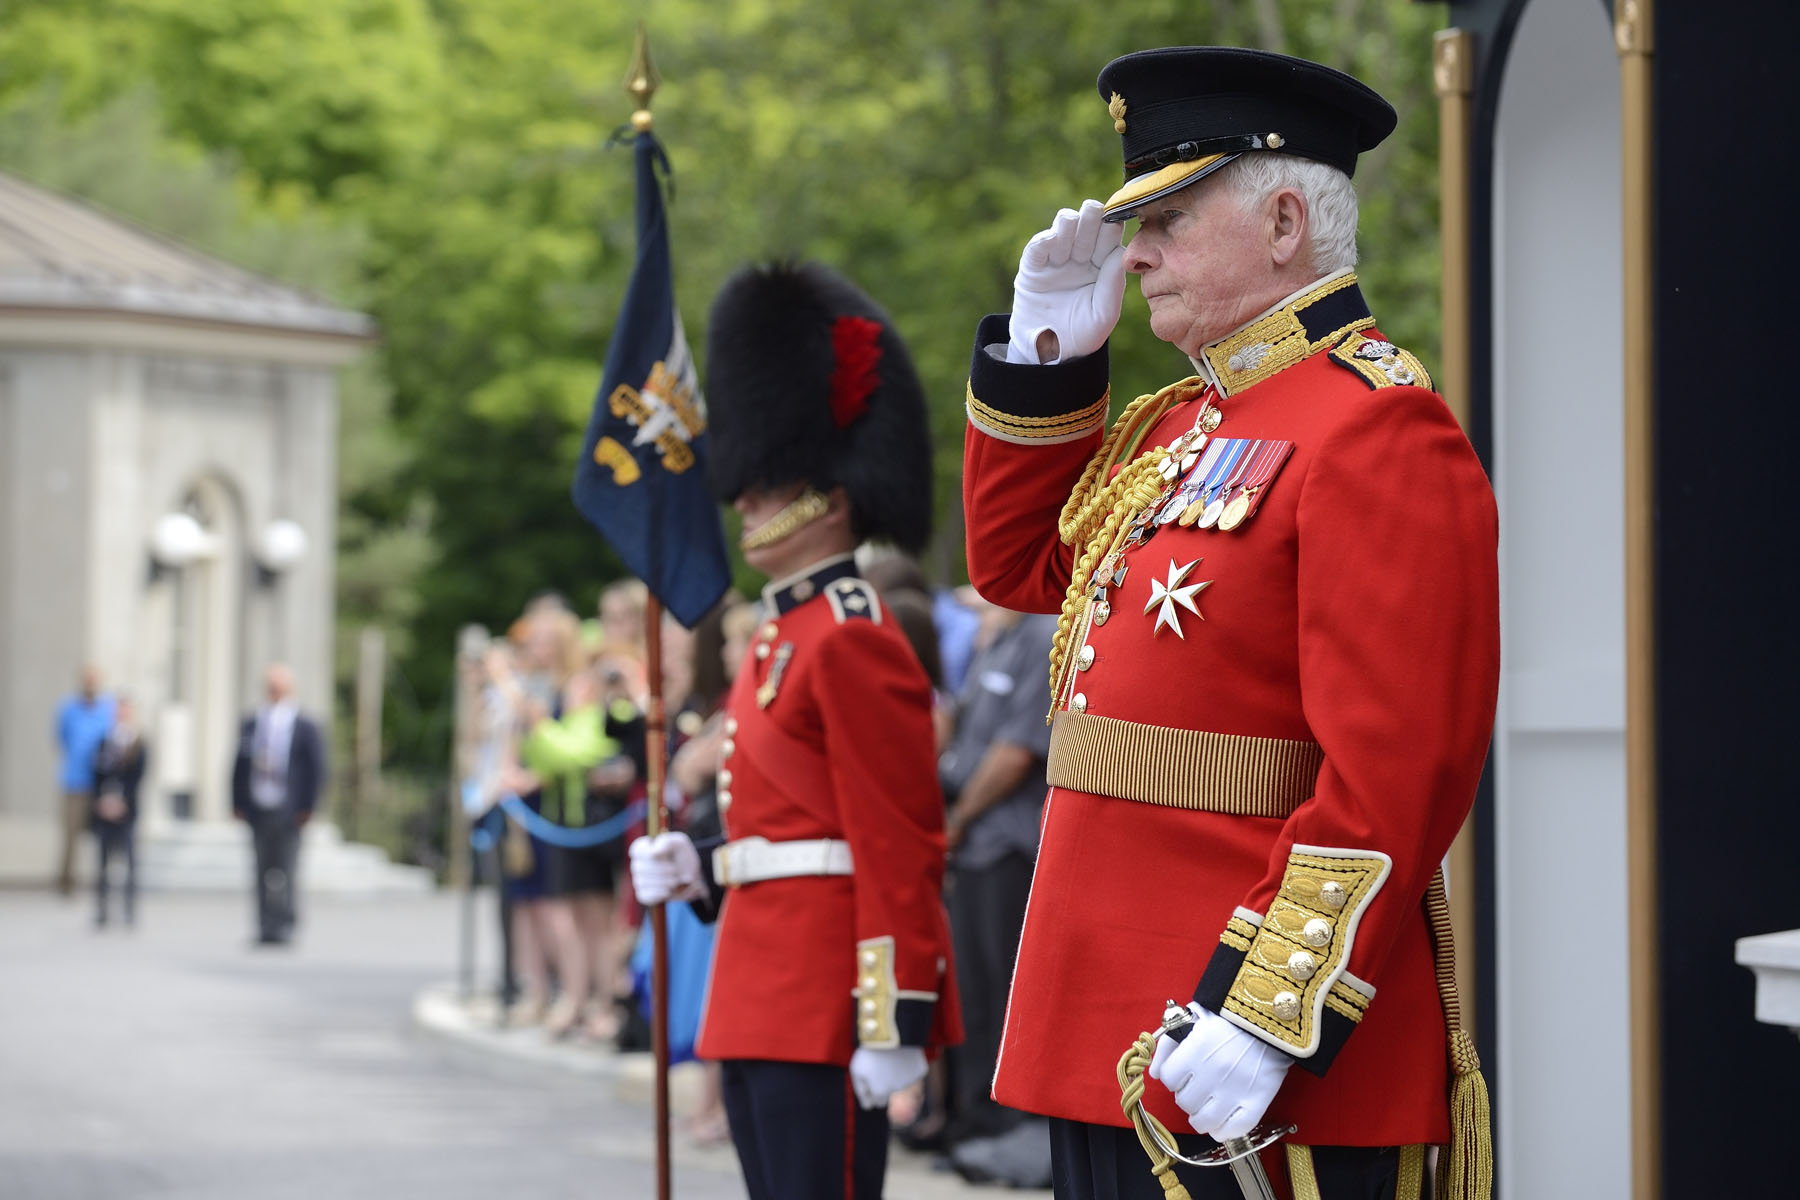 """I'm always impressed by the strength and endurance of the Ceremonial Guard,"" declared His Excellency. ""The sheer will it takes to stand outside, in the harsh sun or the driving rain, and to do so without losing your composure is remarkable. It certainly impresses the thousands of visitors who come to Rideau Hall! People leave here with a greater appreciation for what you and your comrades do for our country each and every day."""